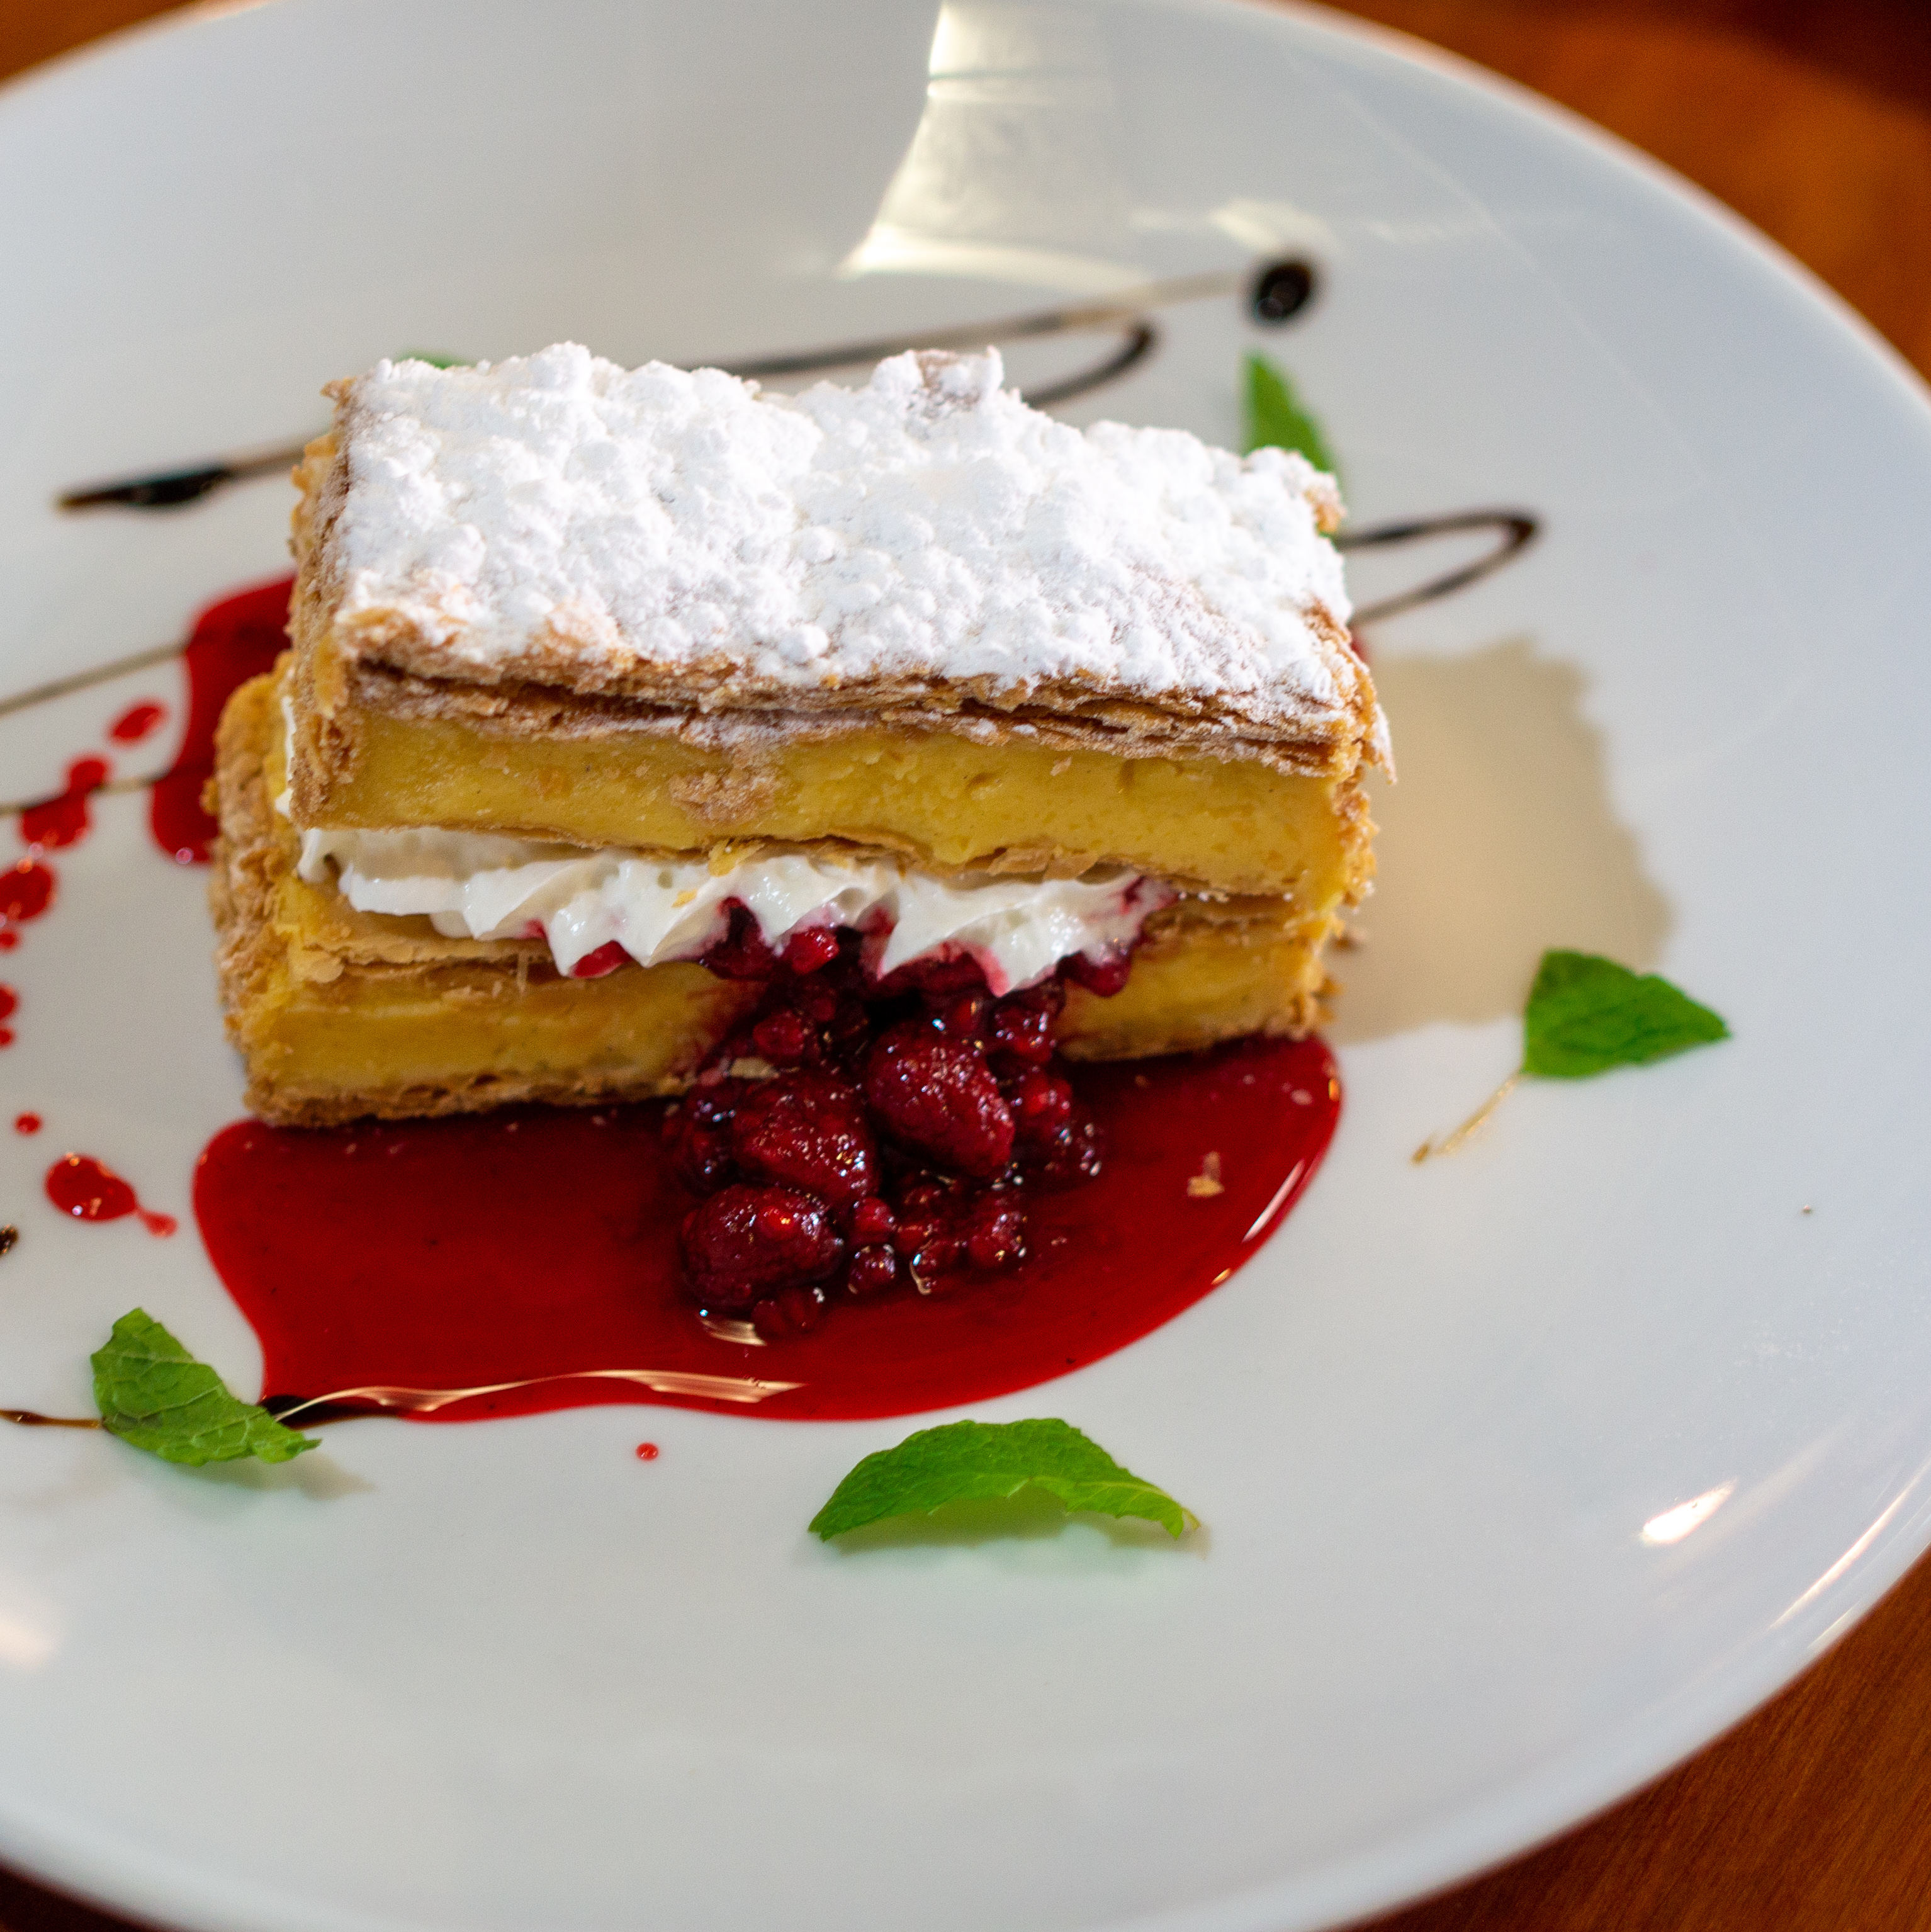 Layer cake with berry sauce